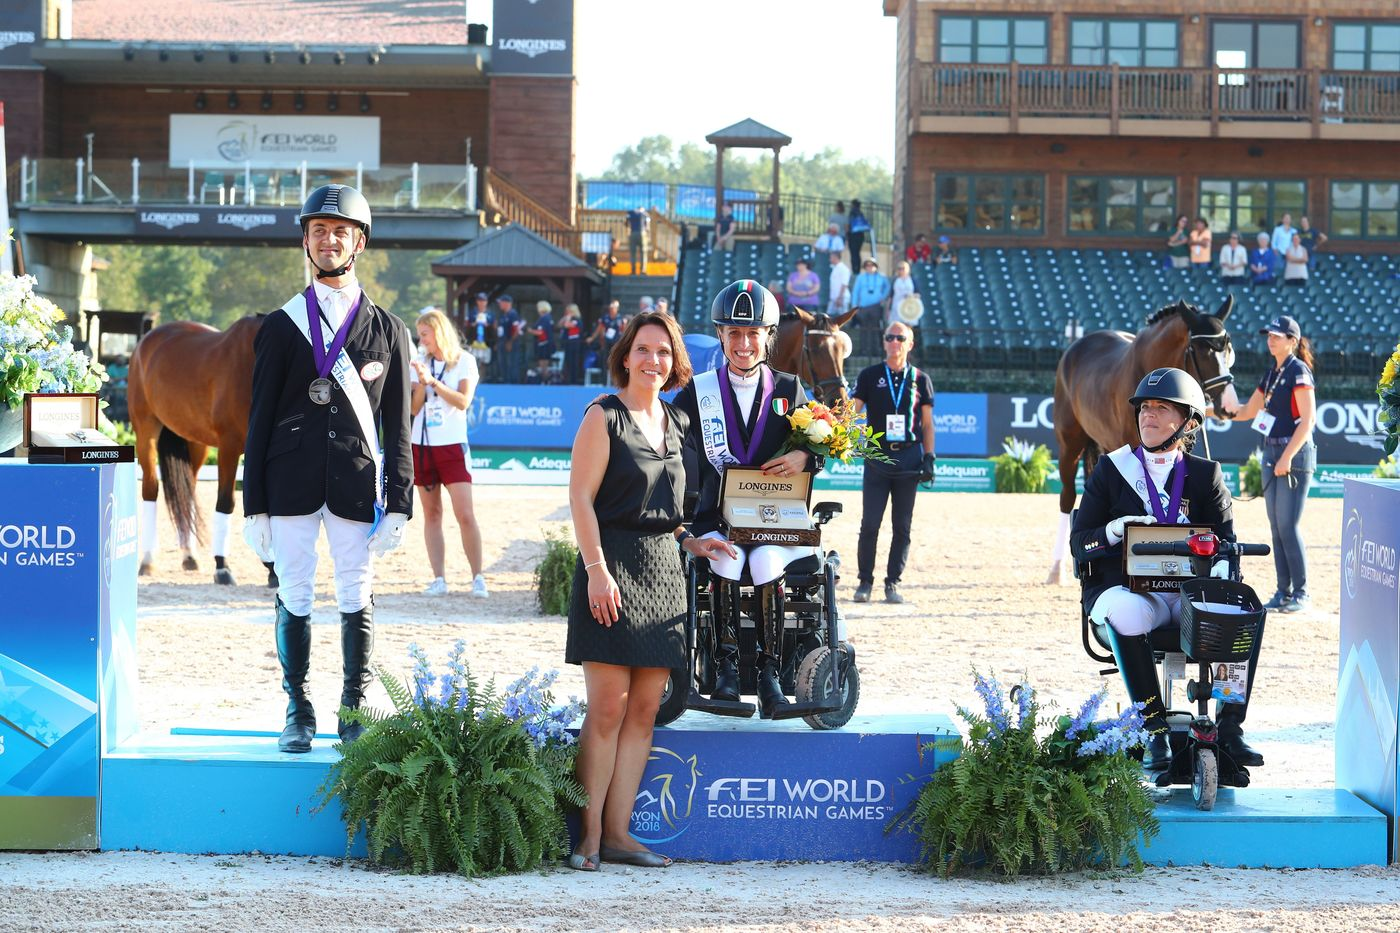 Longines Show Jumping Event: The FEI World Equestrian Games ended beautifully with Germany topping the medal table   9